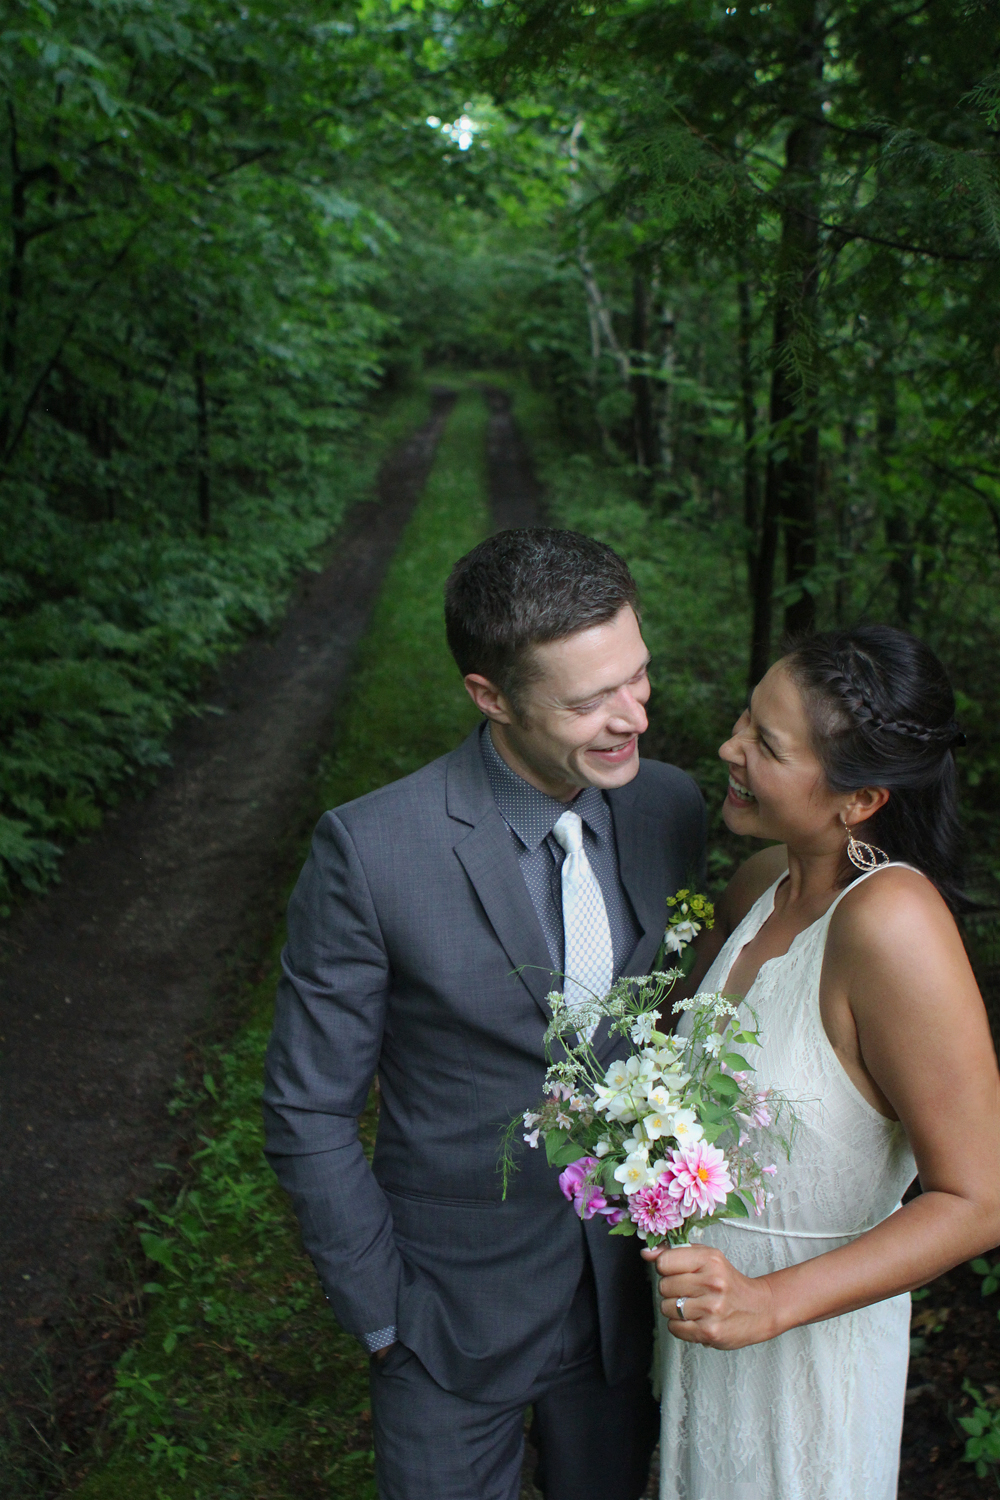 Janna Kostus Chris Urbasic Northern Michigan wedding photographer Aubrey Ann Parker photography Benzie County wedding elopement photo Crystal Lake